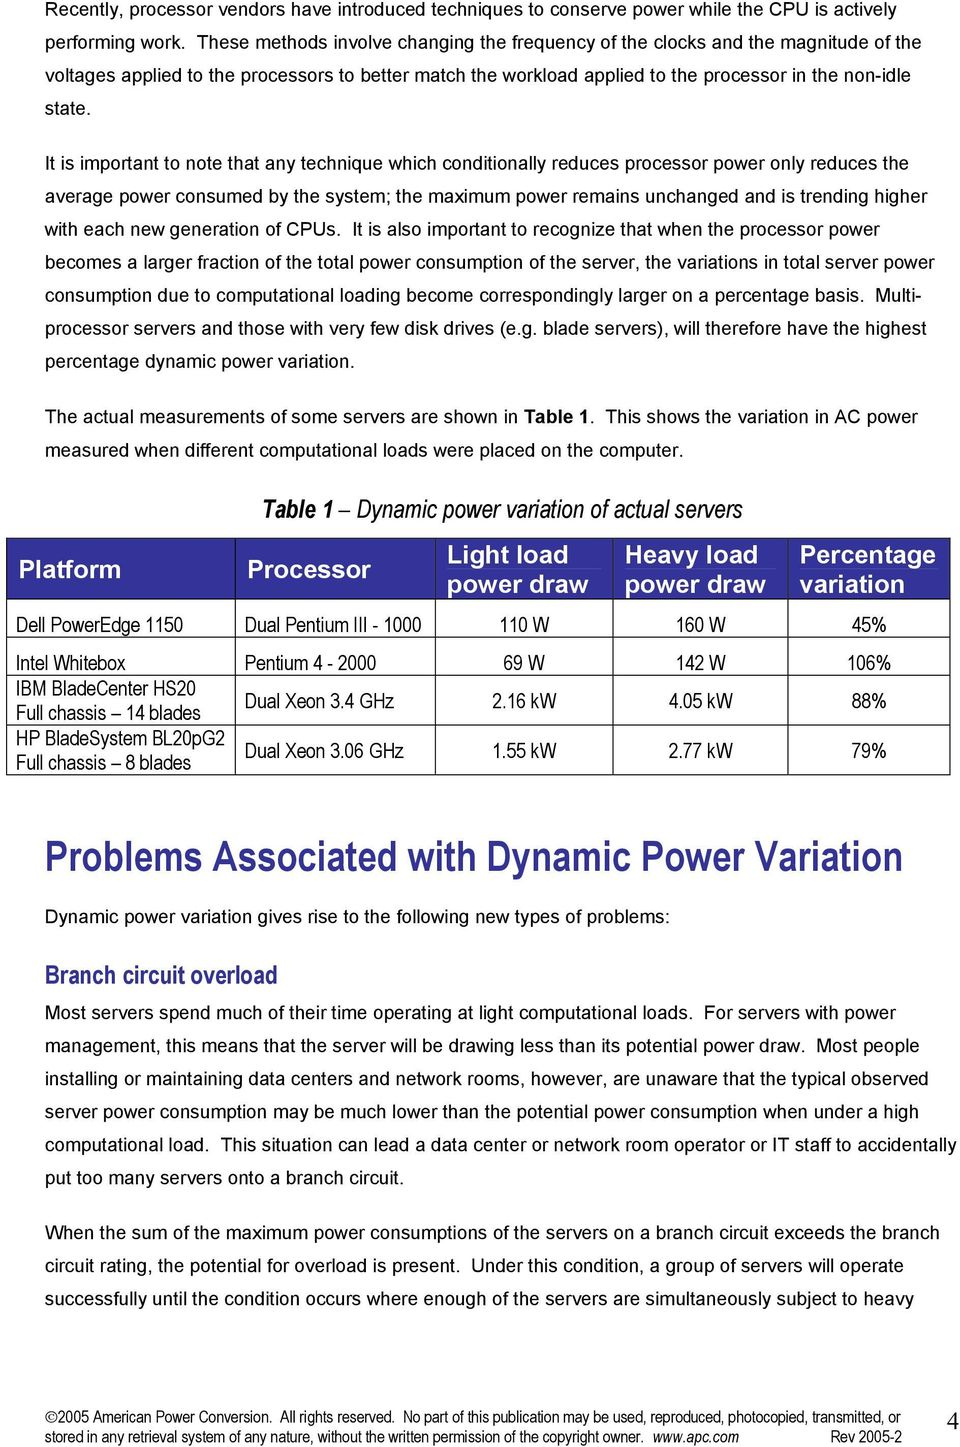 It is important to note that any technique which conditionally reduces processor power only reduces the average power consumed by the system; the maximum power remains unchanged and is trending